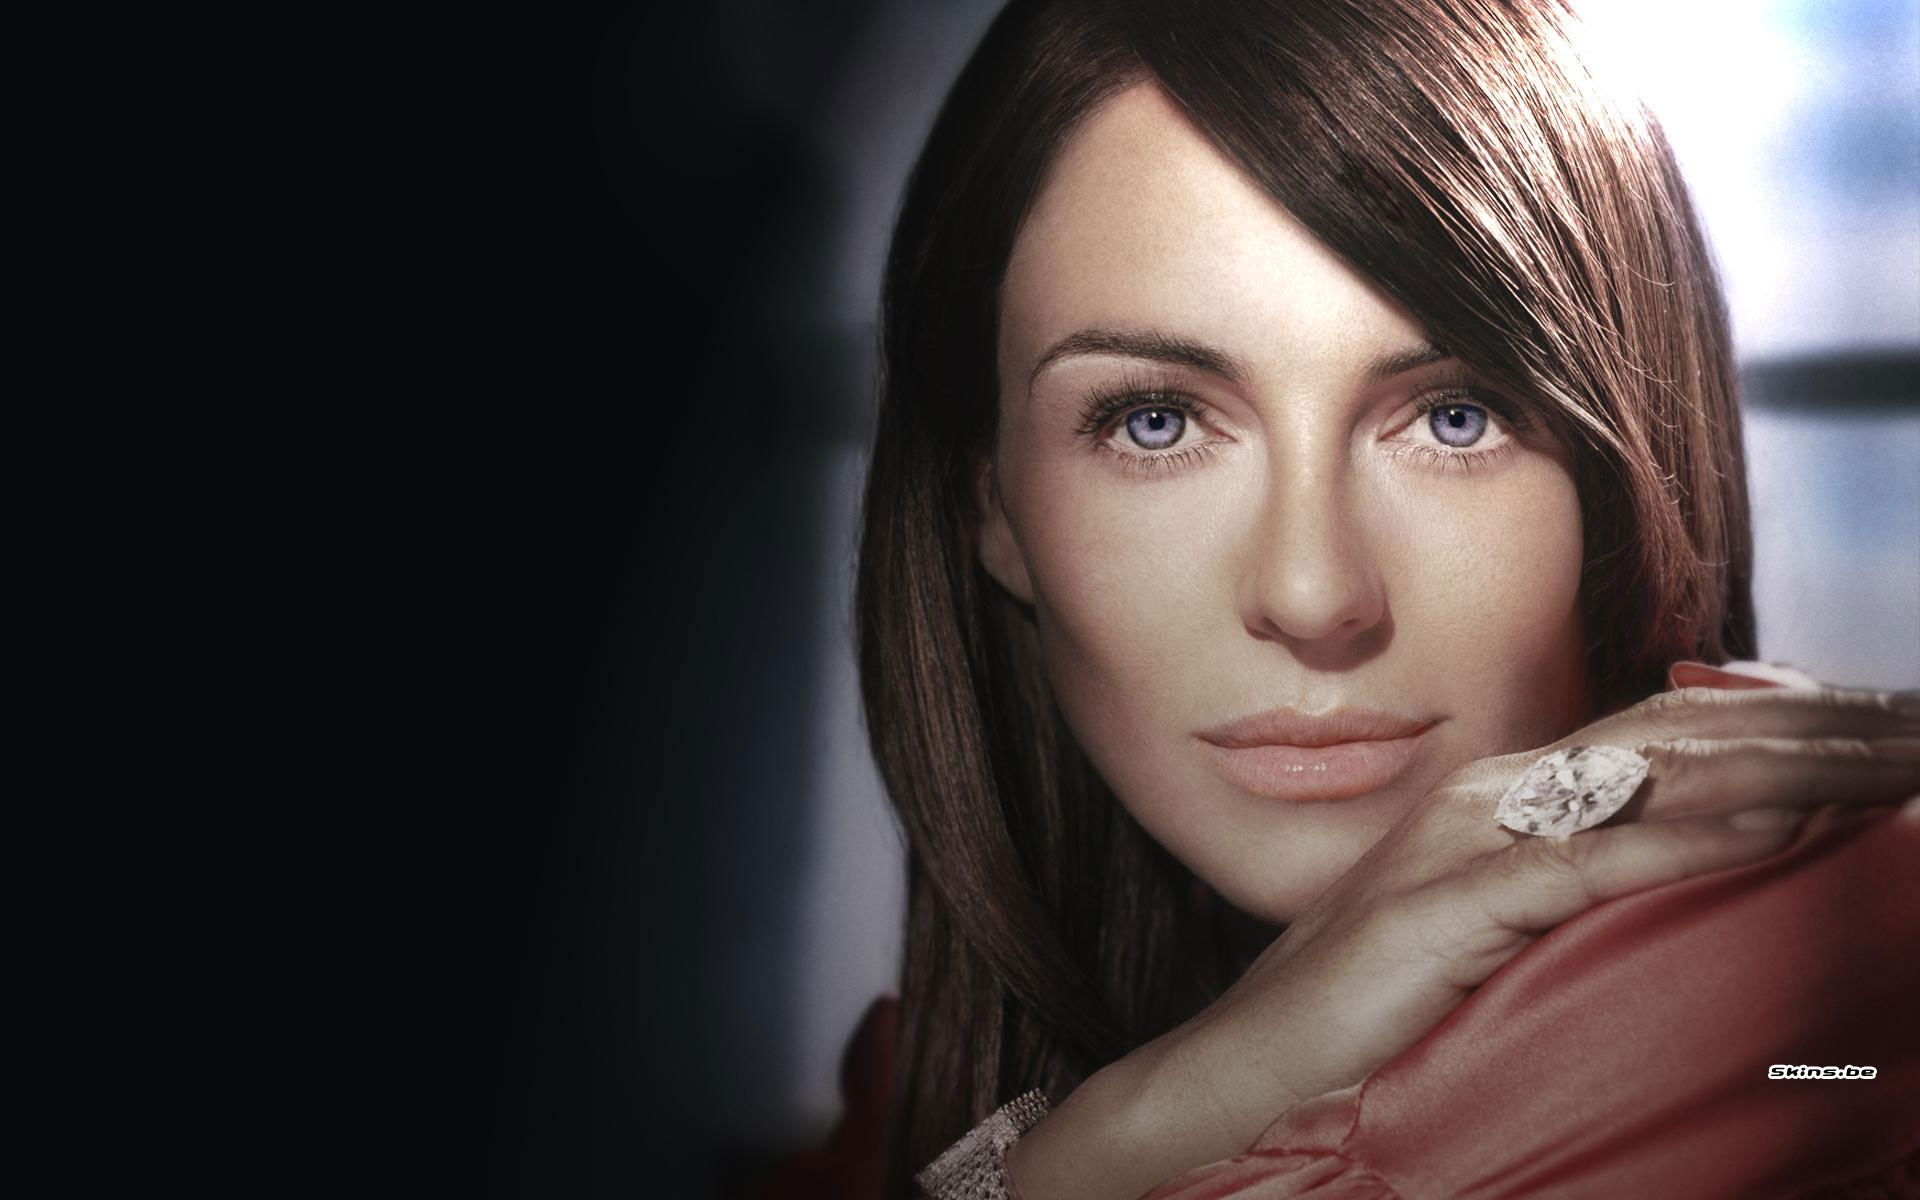 Elizabeth Hurley desktop wallpaper download in 1920x1200